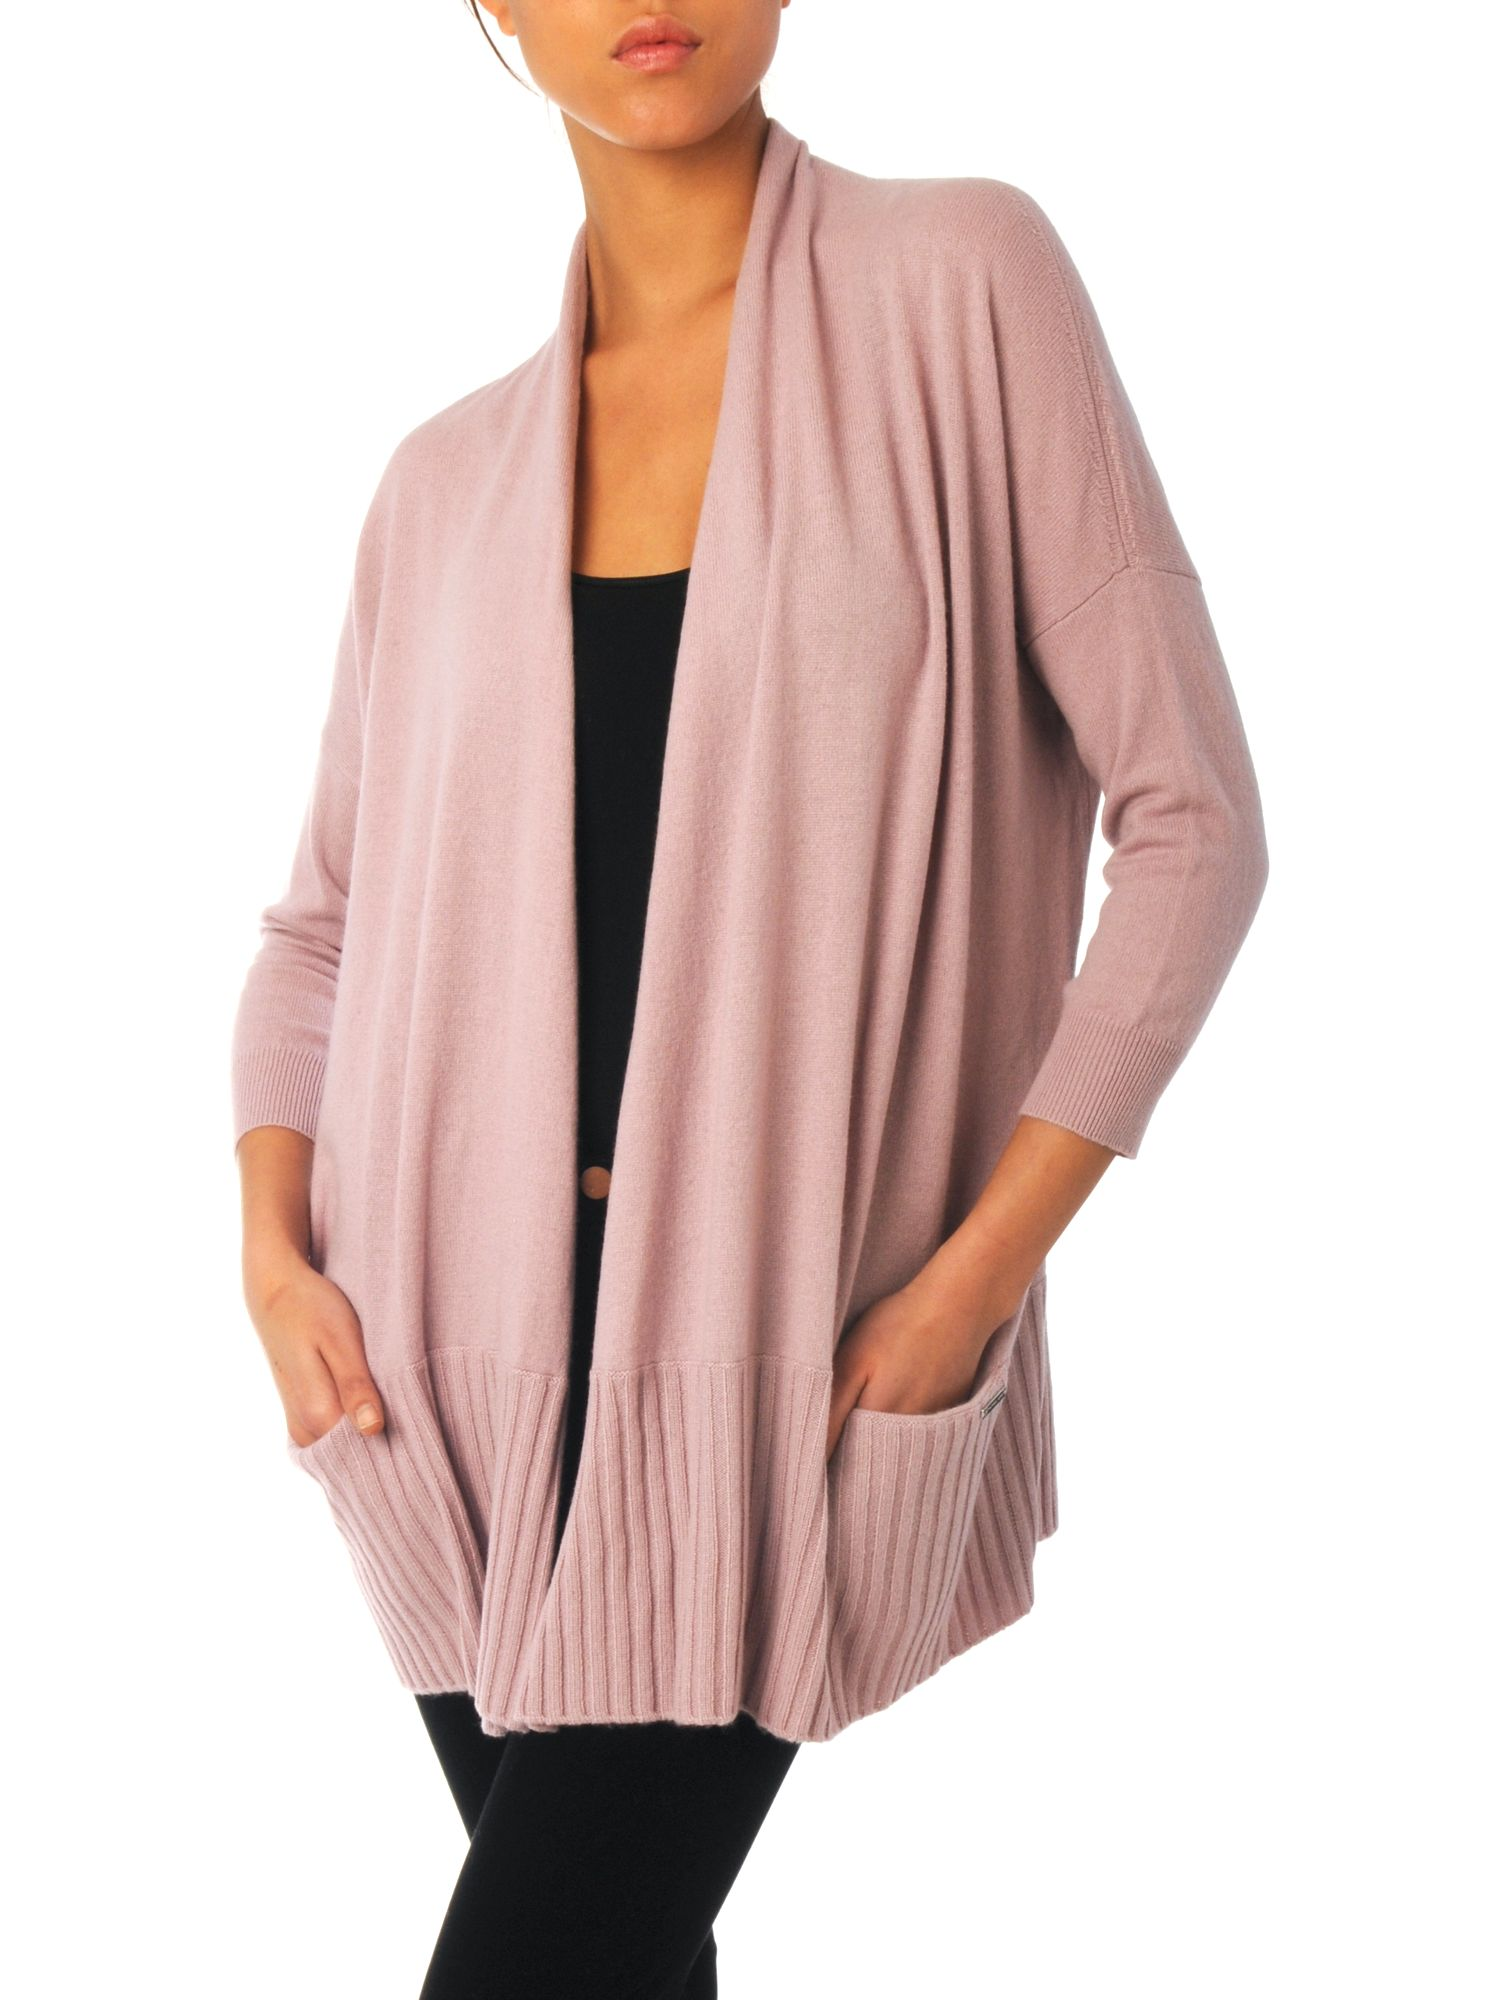 Find great deals on eBay for Long Cardigan Sweater in Women's Clothing and Sweaters. Shop with confidence. Find great deals on eBay for Long Cardigan Sweater in Women's Clothing and Sweaters. Size UK Size Bust Waist Length Sleeve Shoulder. Quality is the first with best service. Size:S,M,L,XL. Size Chart(cm) No exception. M 96